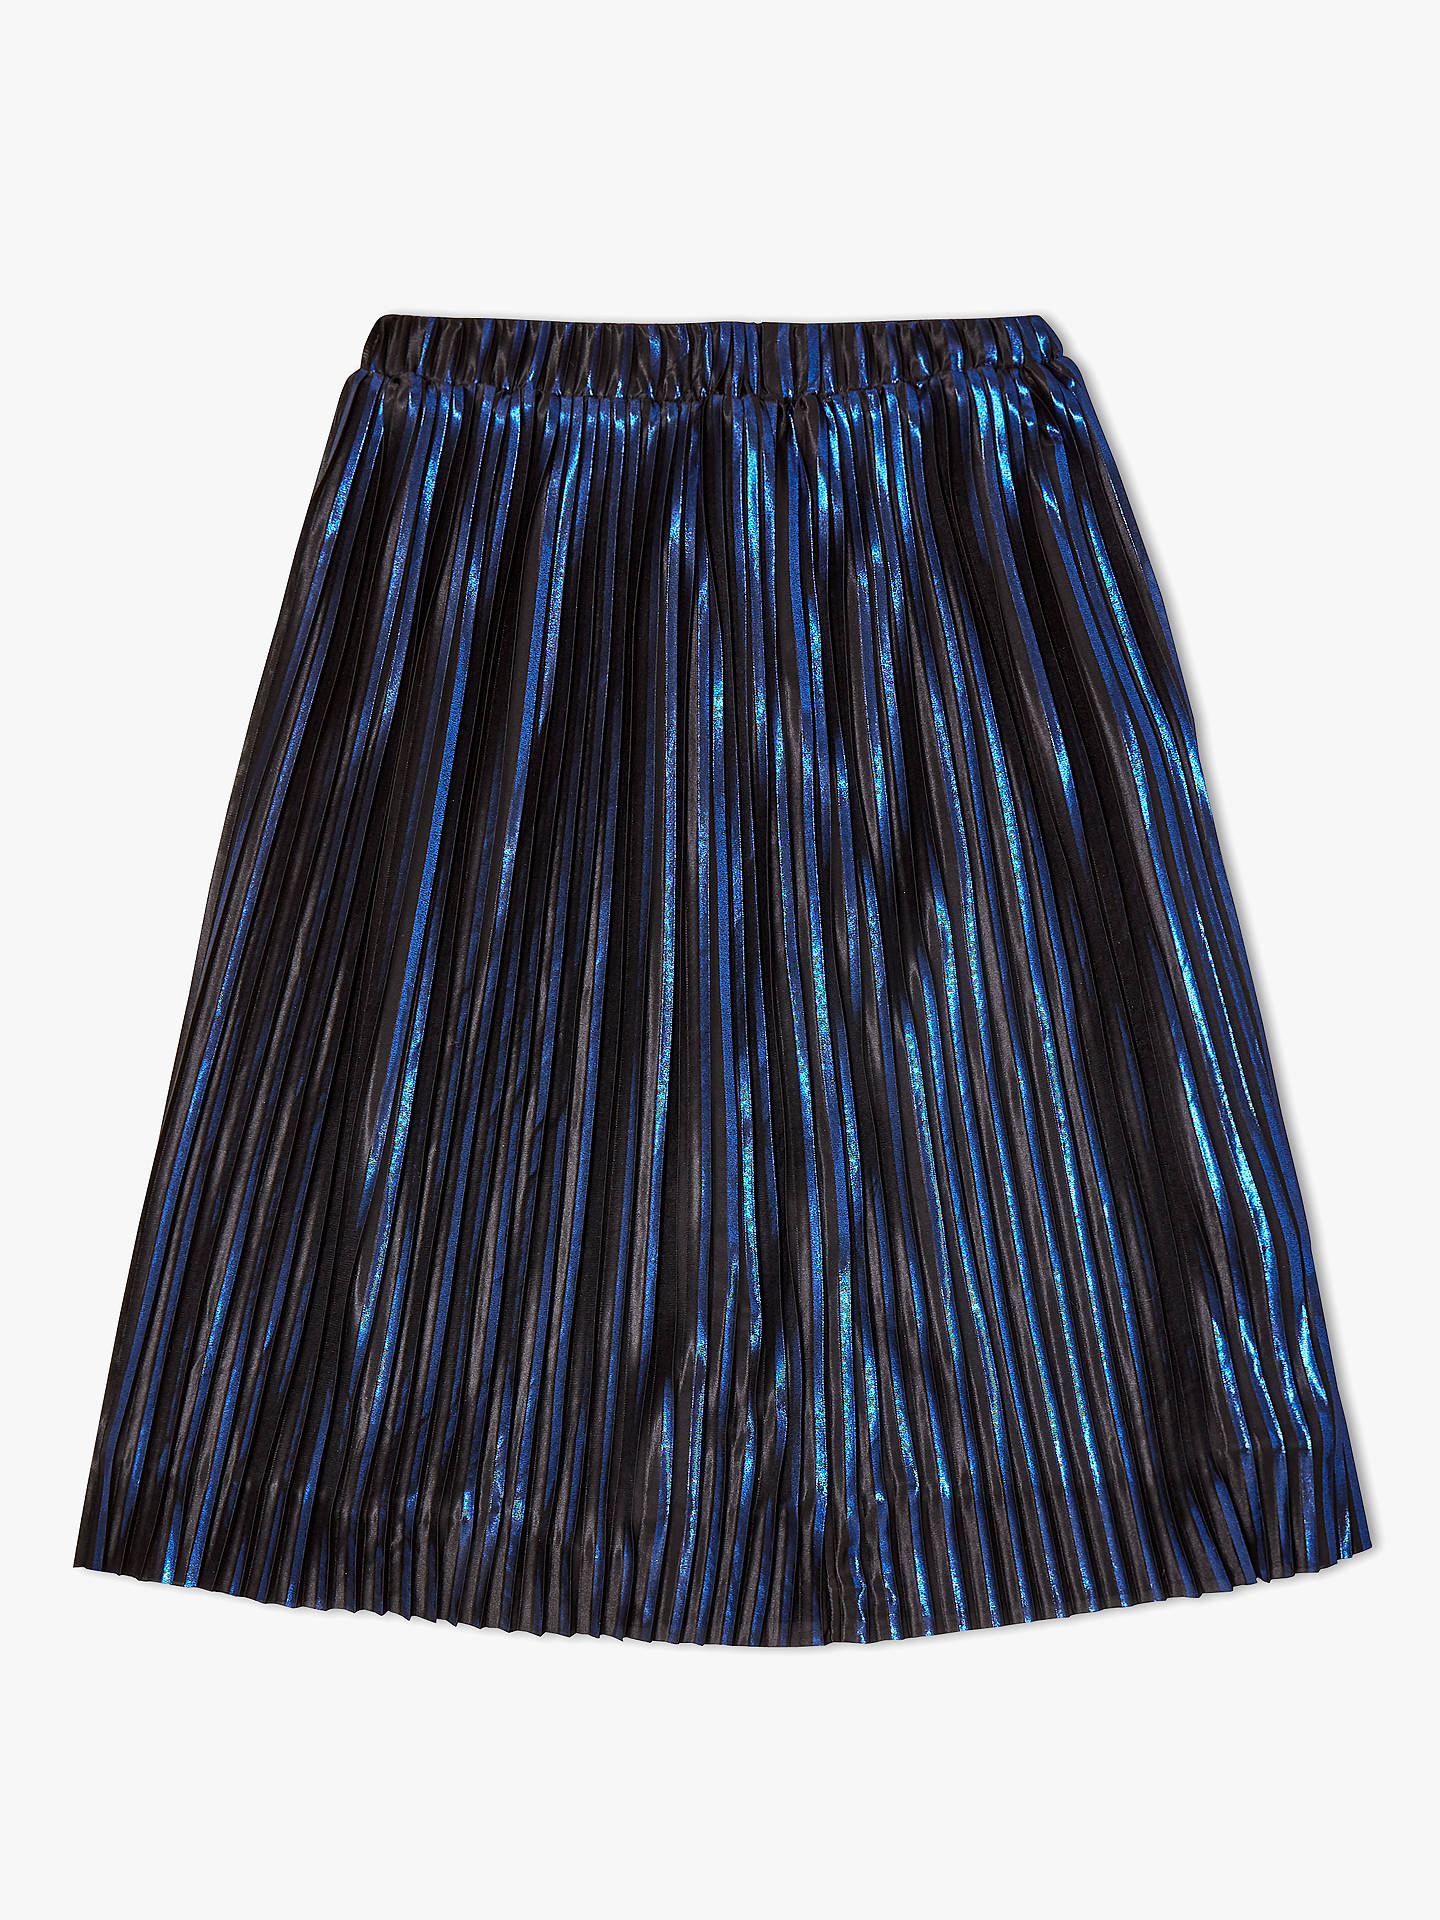 BuyJohn Lewis & Partners Girls' Metallic Pleated Skirt, Blue, 8 years Online at johnlewis.com